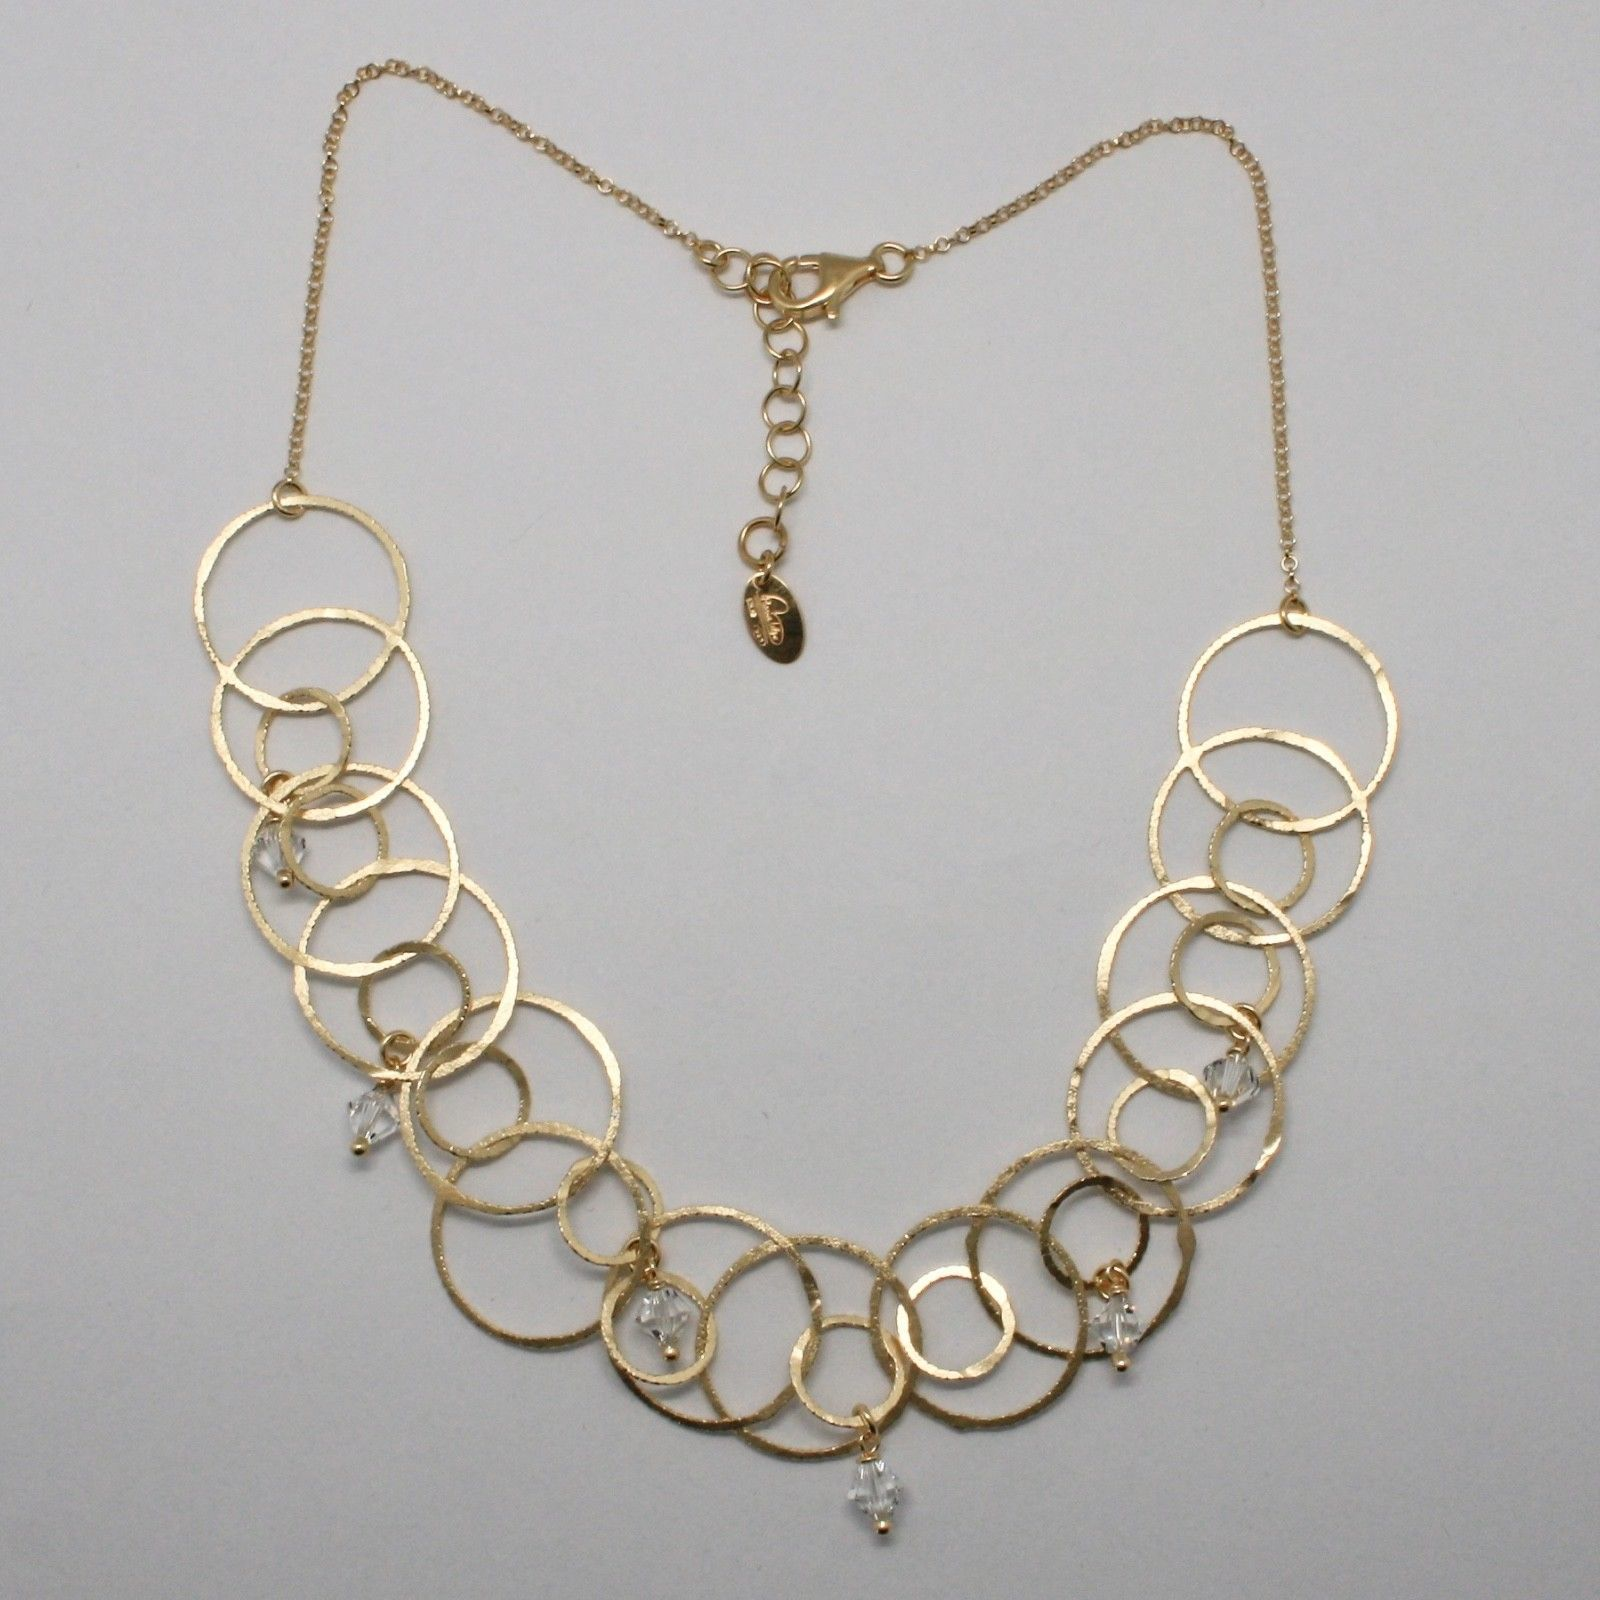 COLLIER RAS-LE-COU ARGENT 925 LAMÉE OR CERCLES BY MARIE IELPO MADE IN ITALY